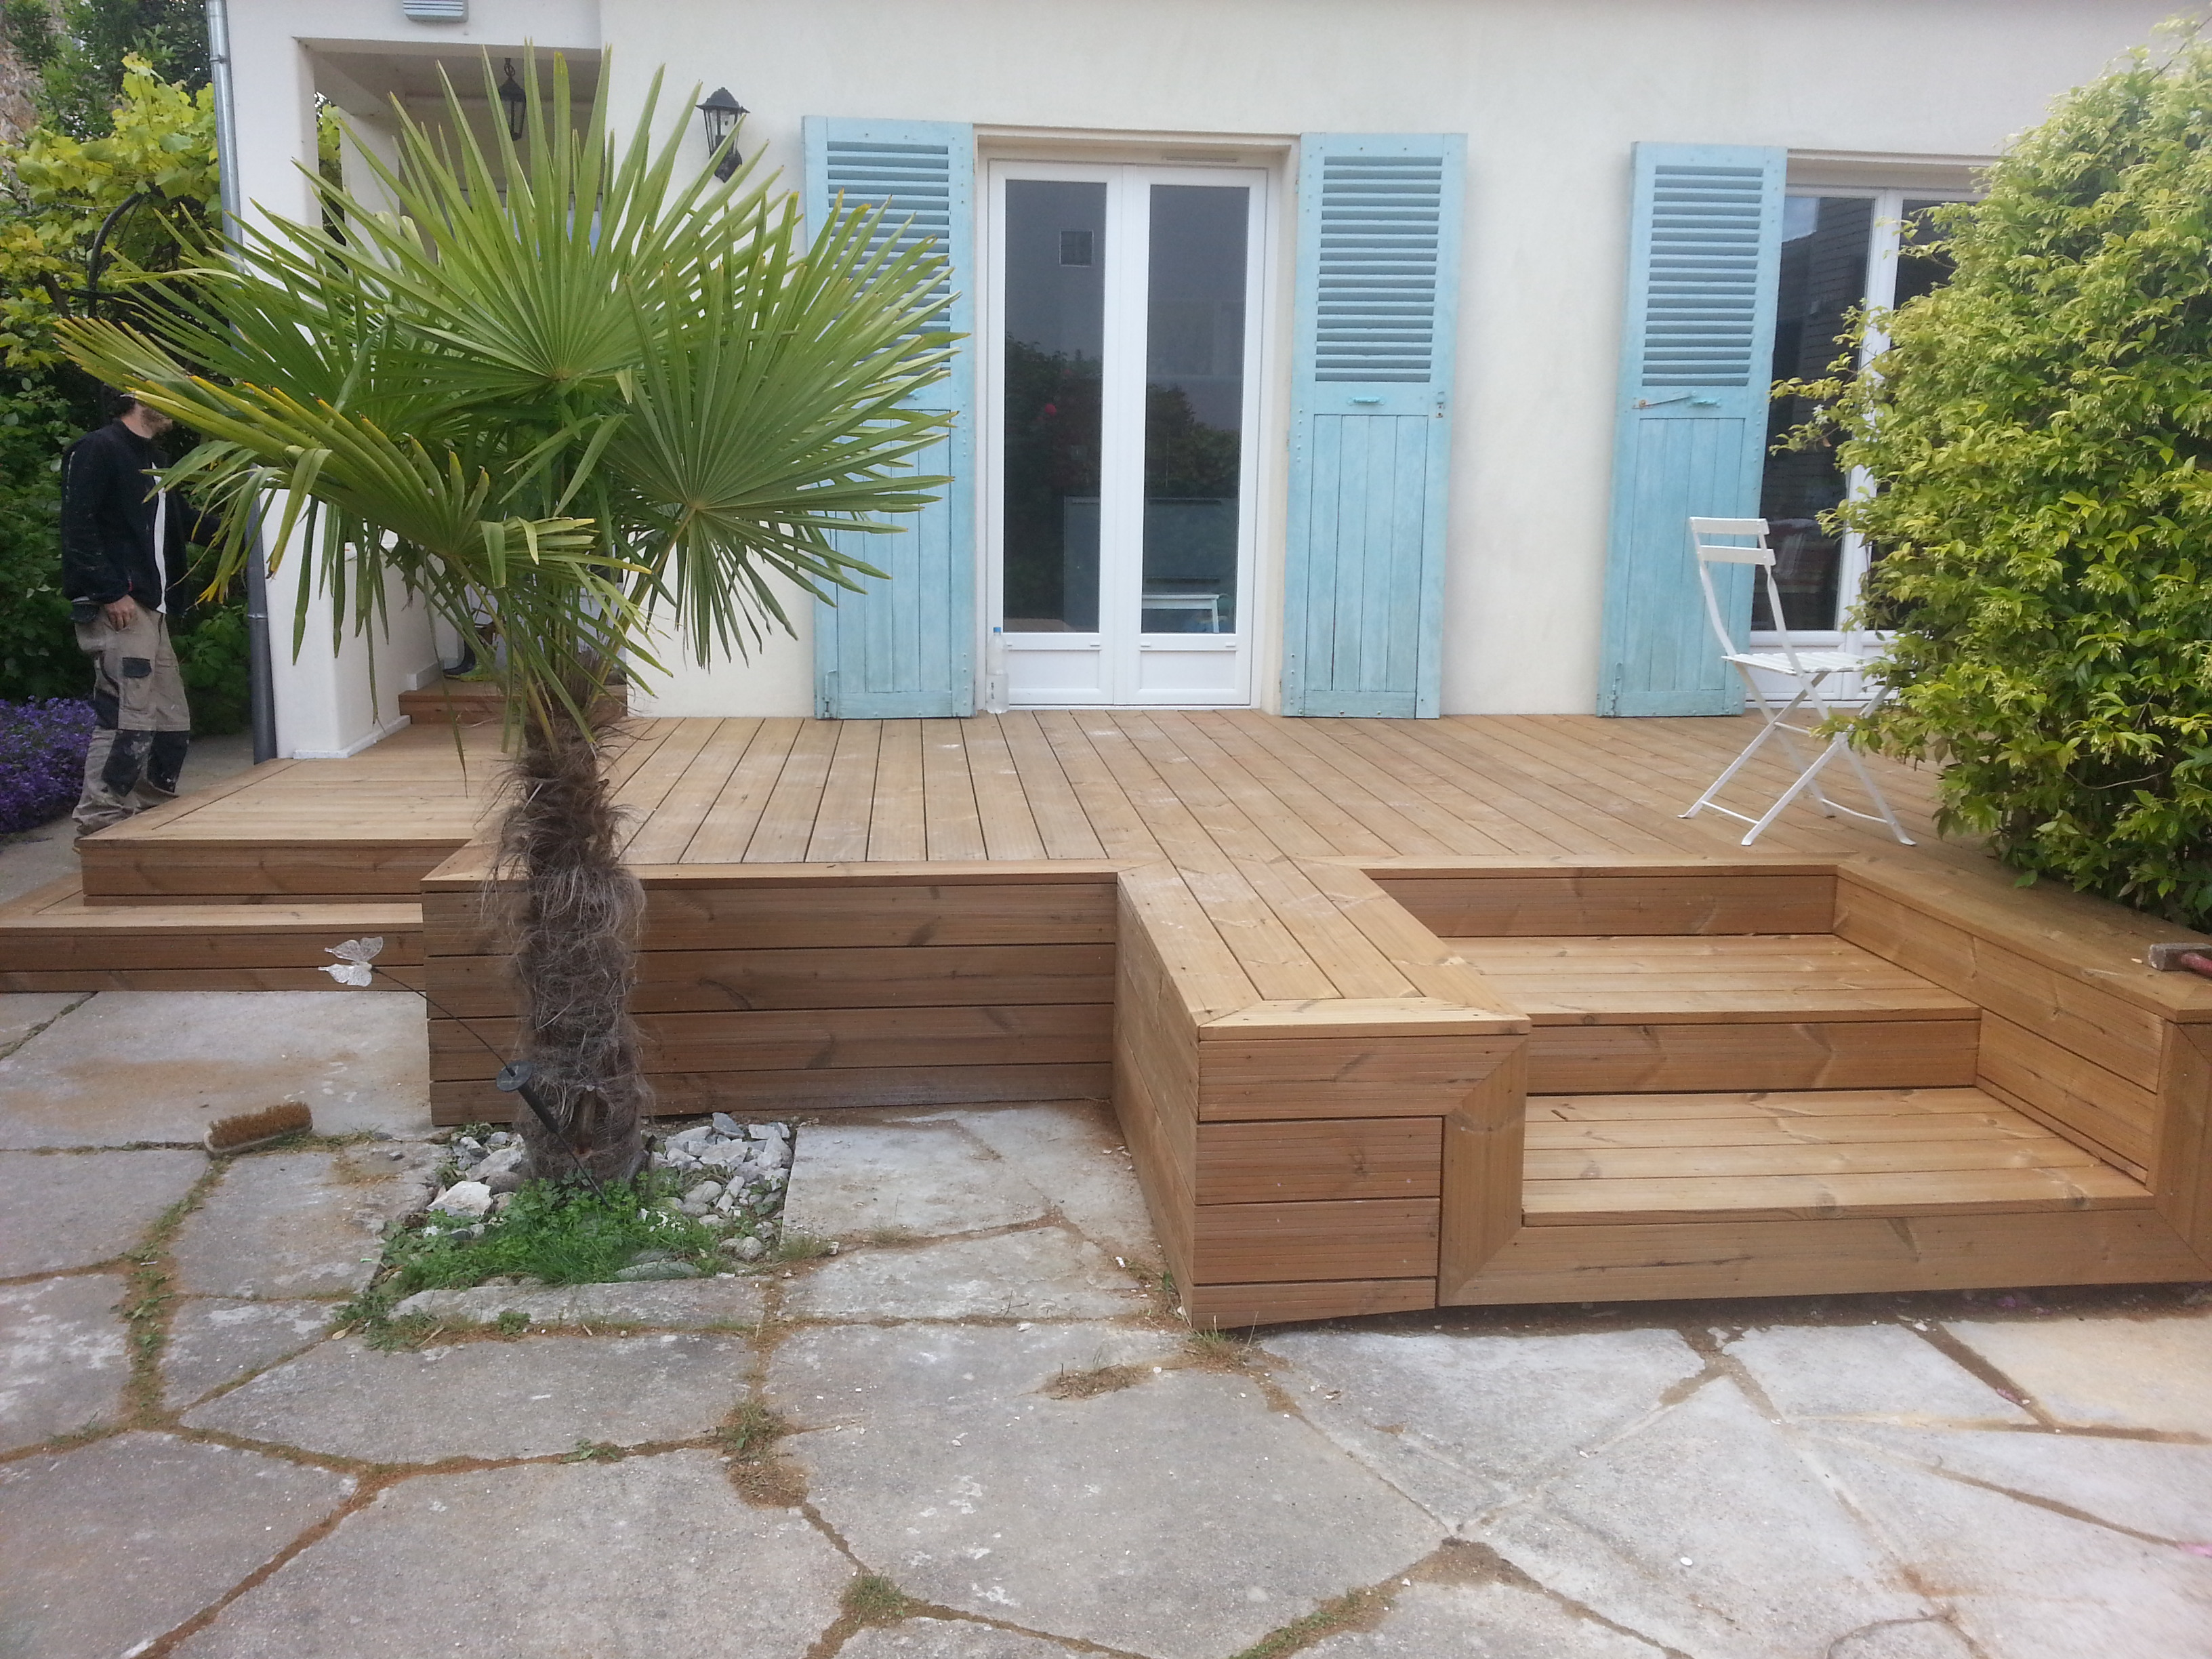 Amenagement terrasse exterieur meilleures images d for Amenagement exterieur paysagiste